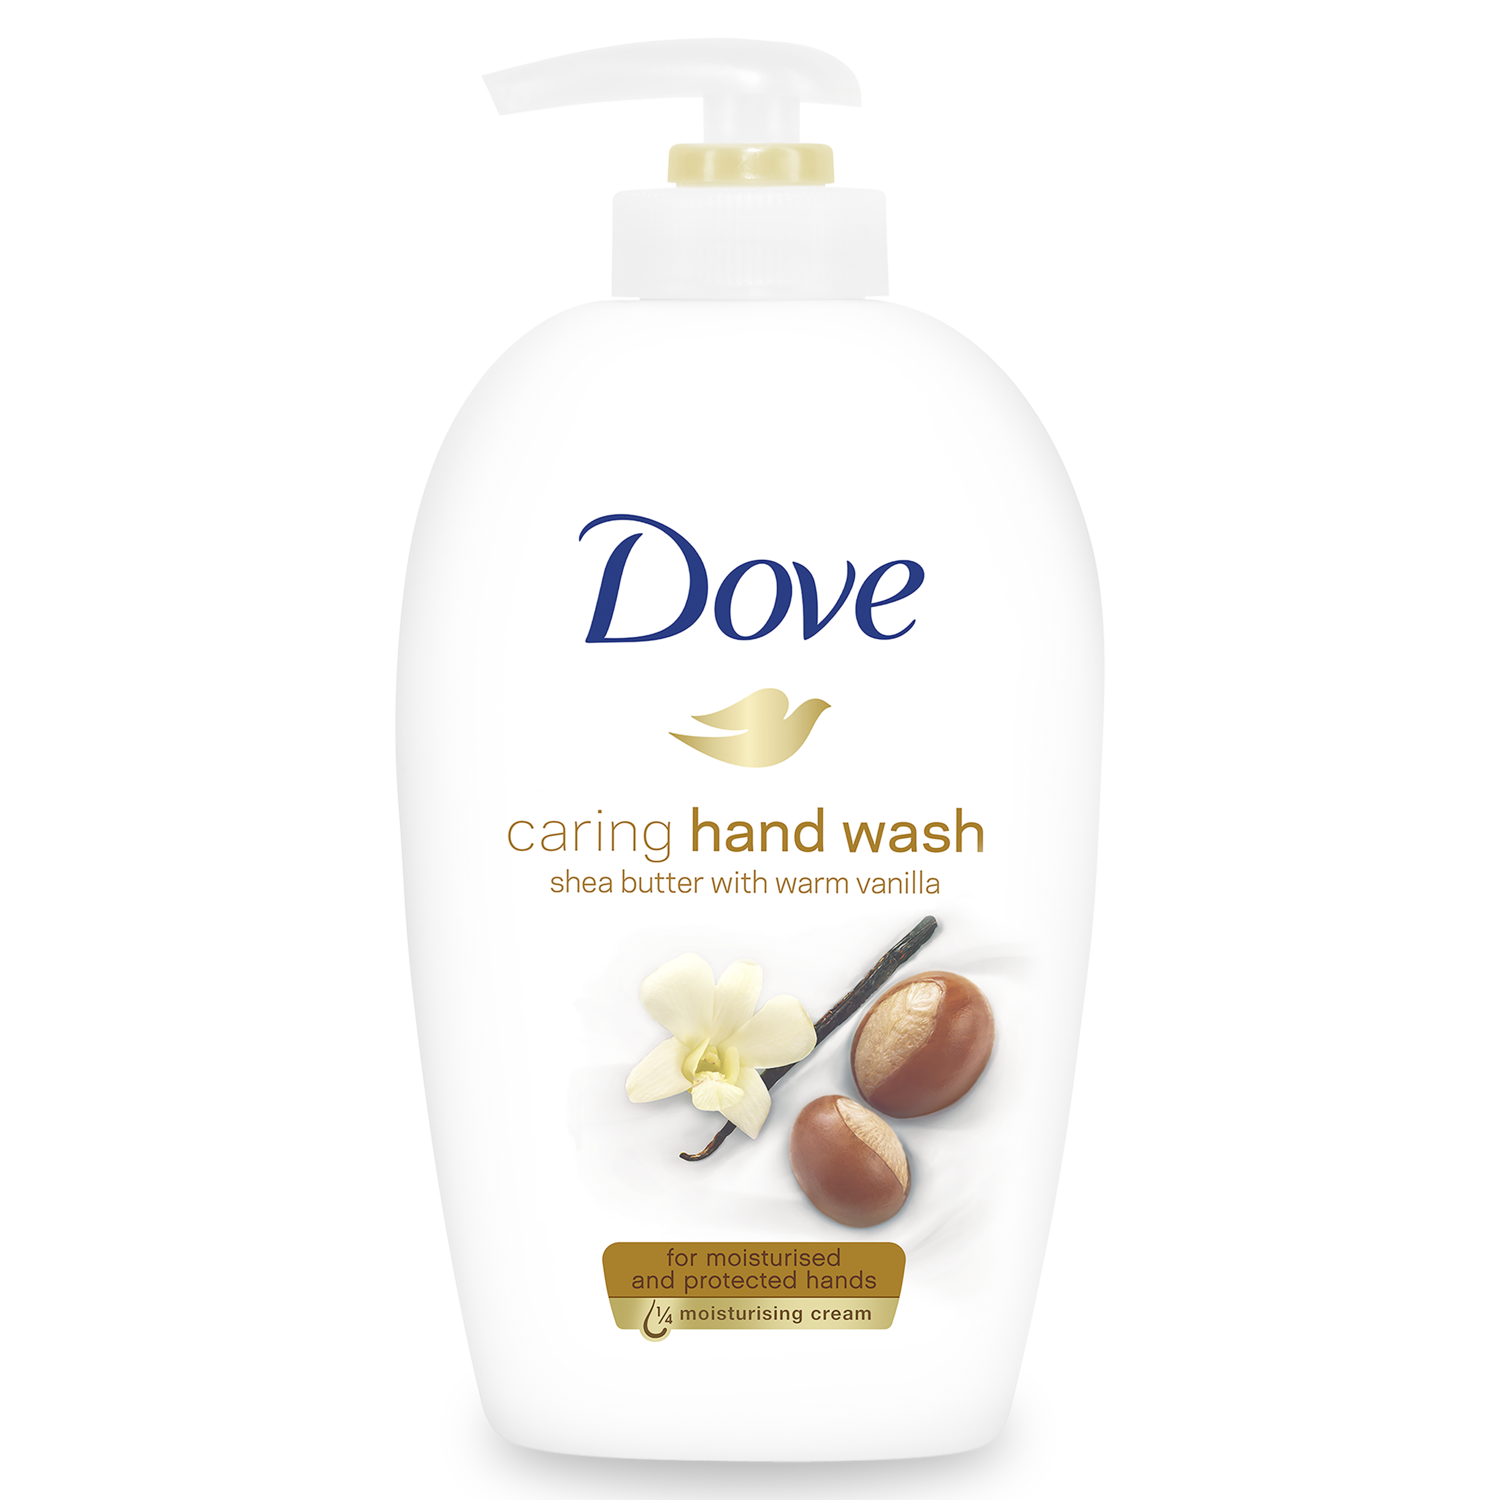 Dove Purely Pampering Shea Butter With Warm Vanilla Hand Wash